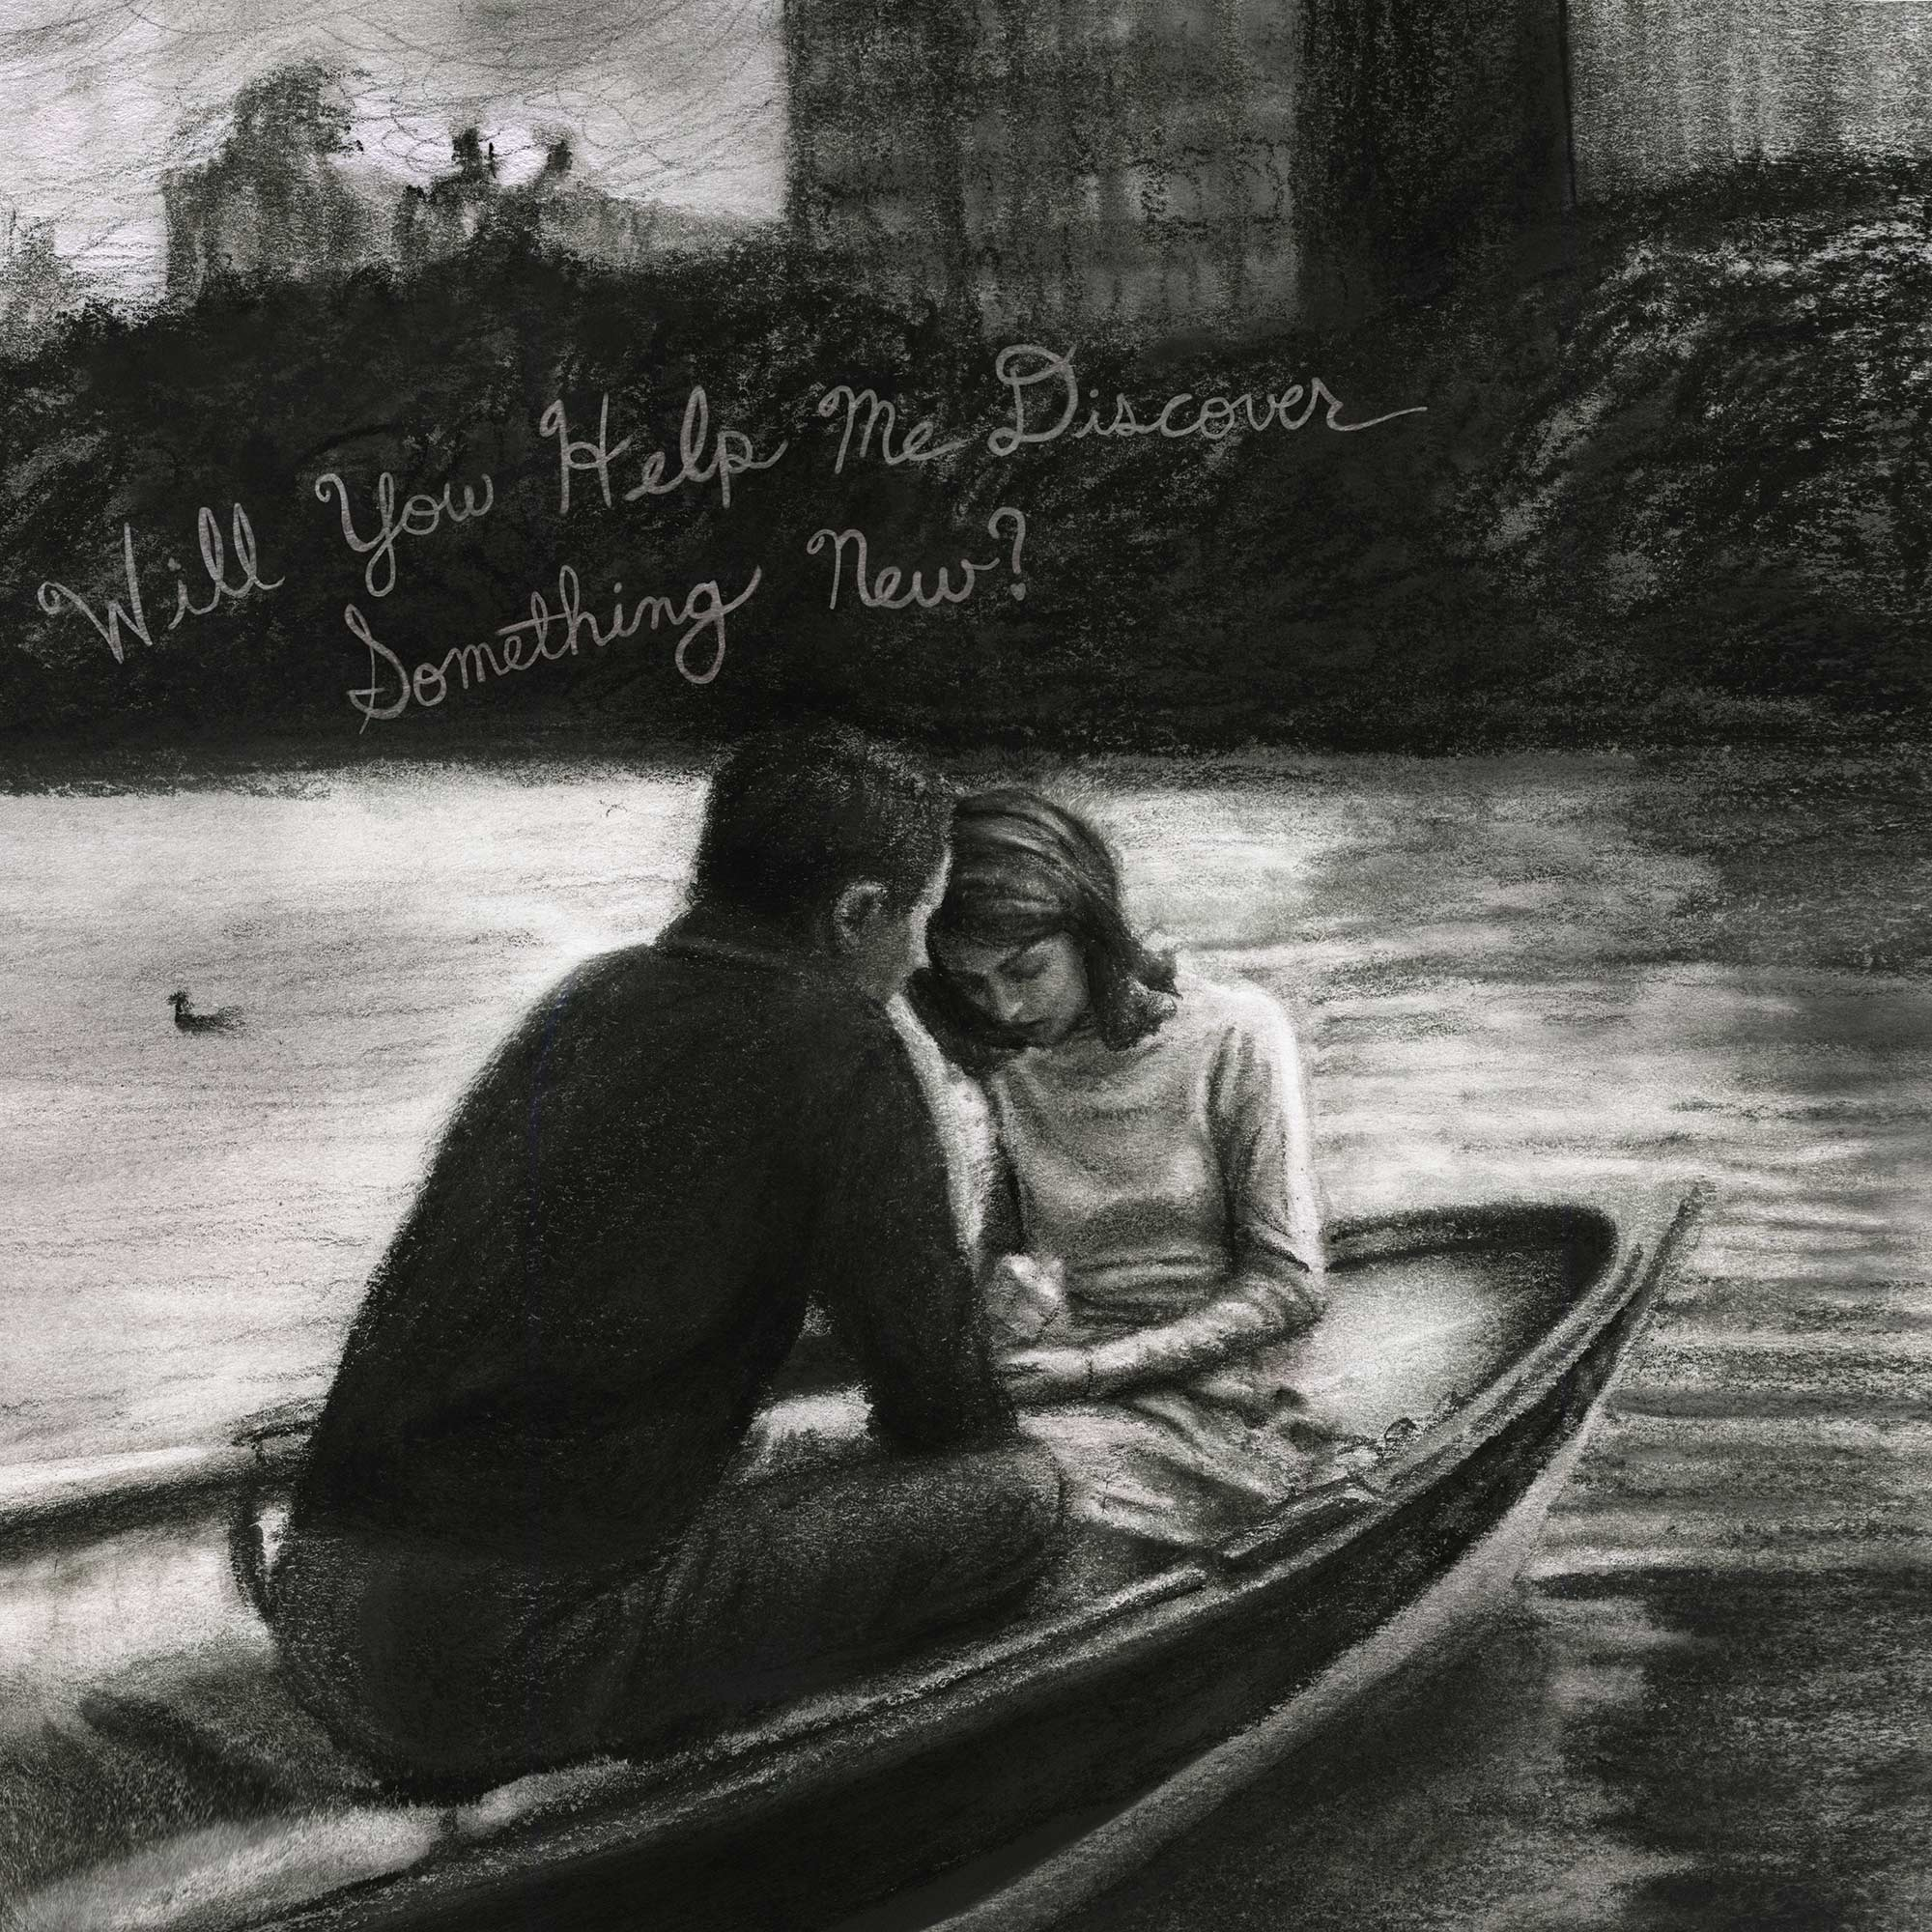 a Couple sitting in a boat romantic love Danny Roberts valentines